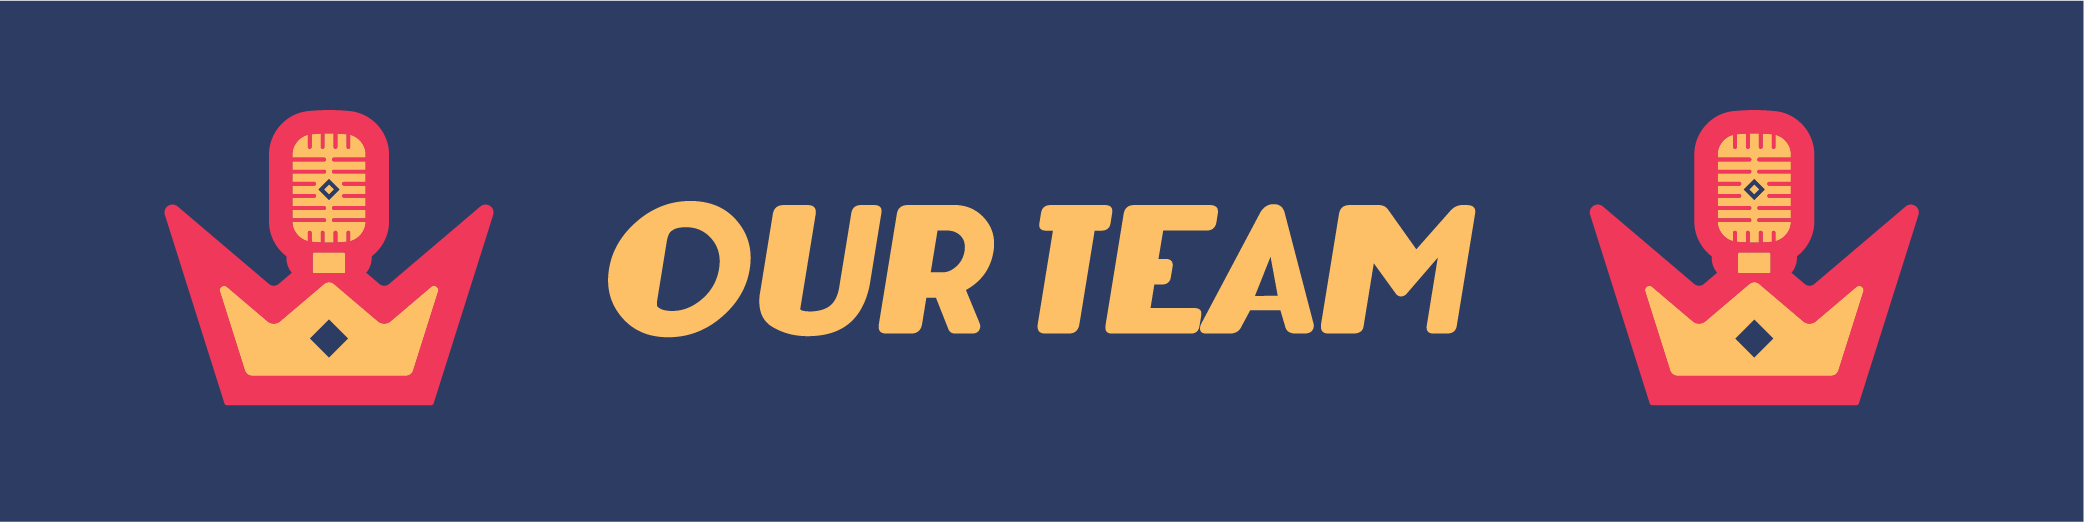 ourteam-02-01.png